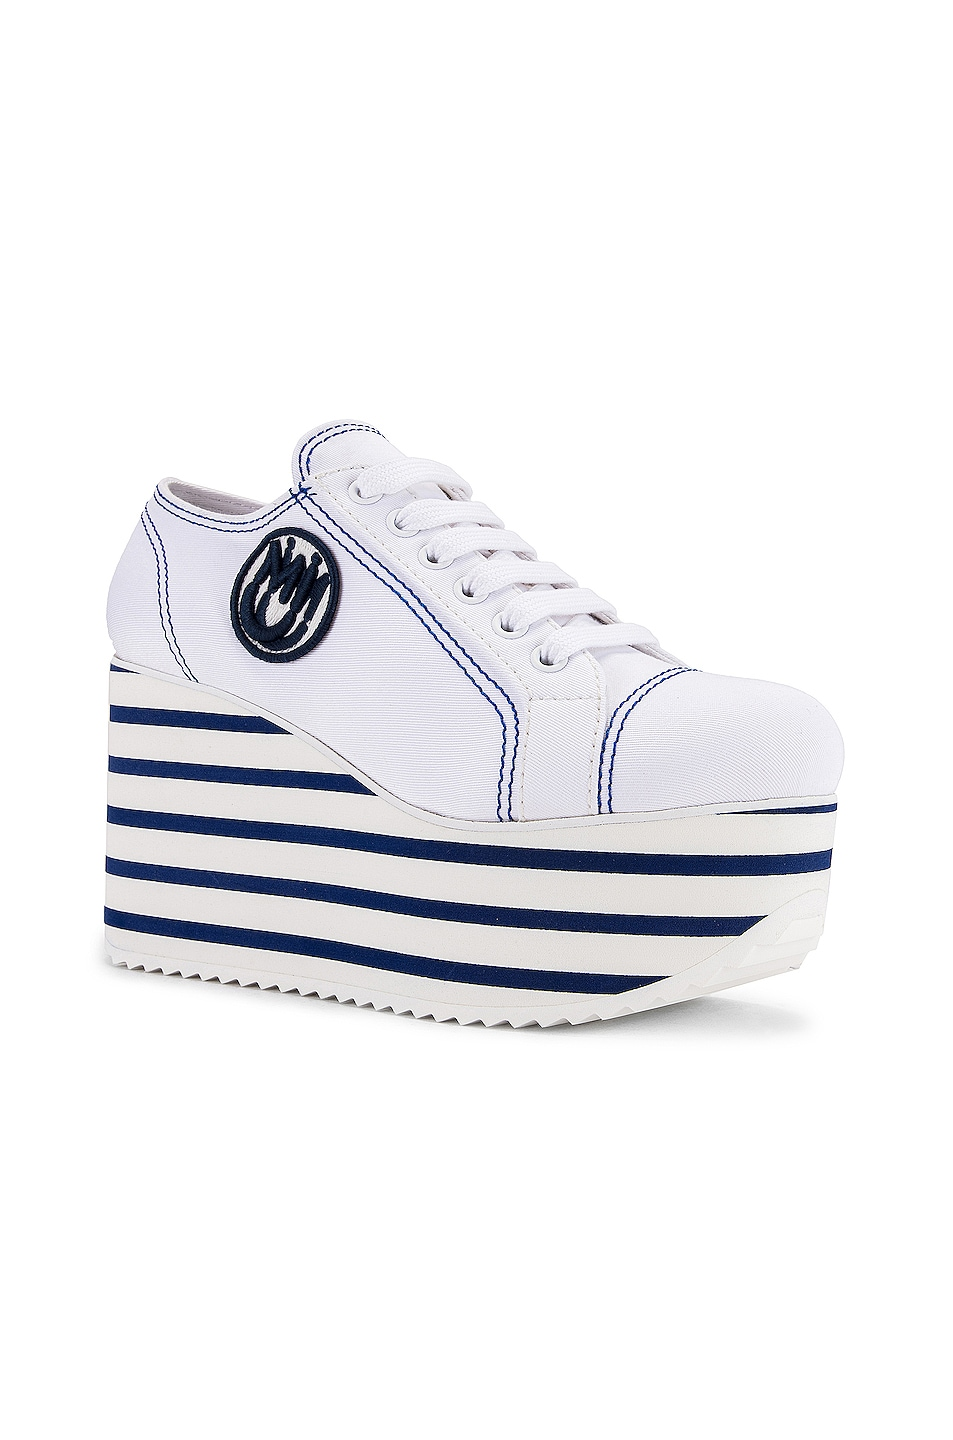 Image 2 of Miu Miu Platform Sneakers in Bianco & Bluette